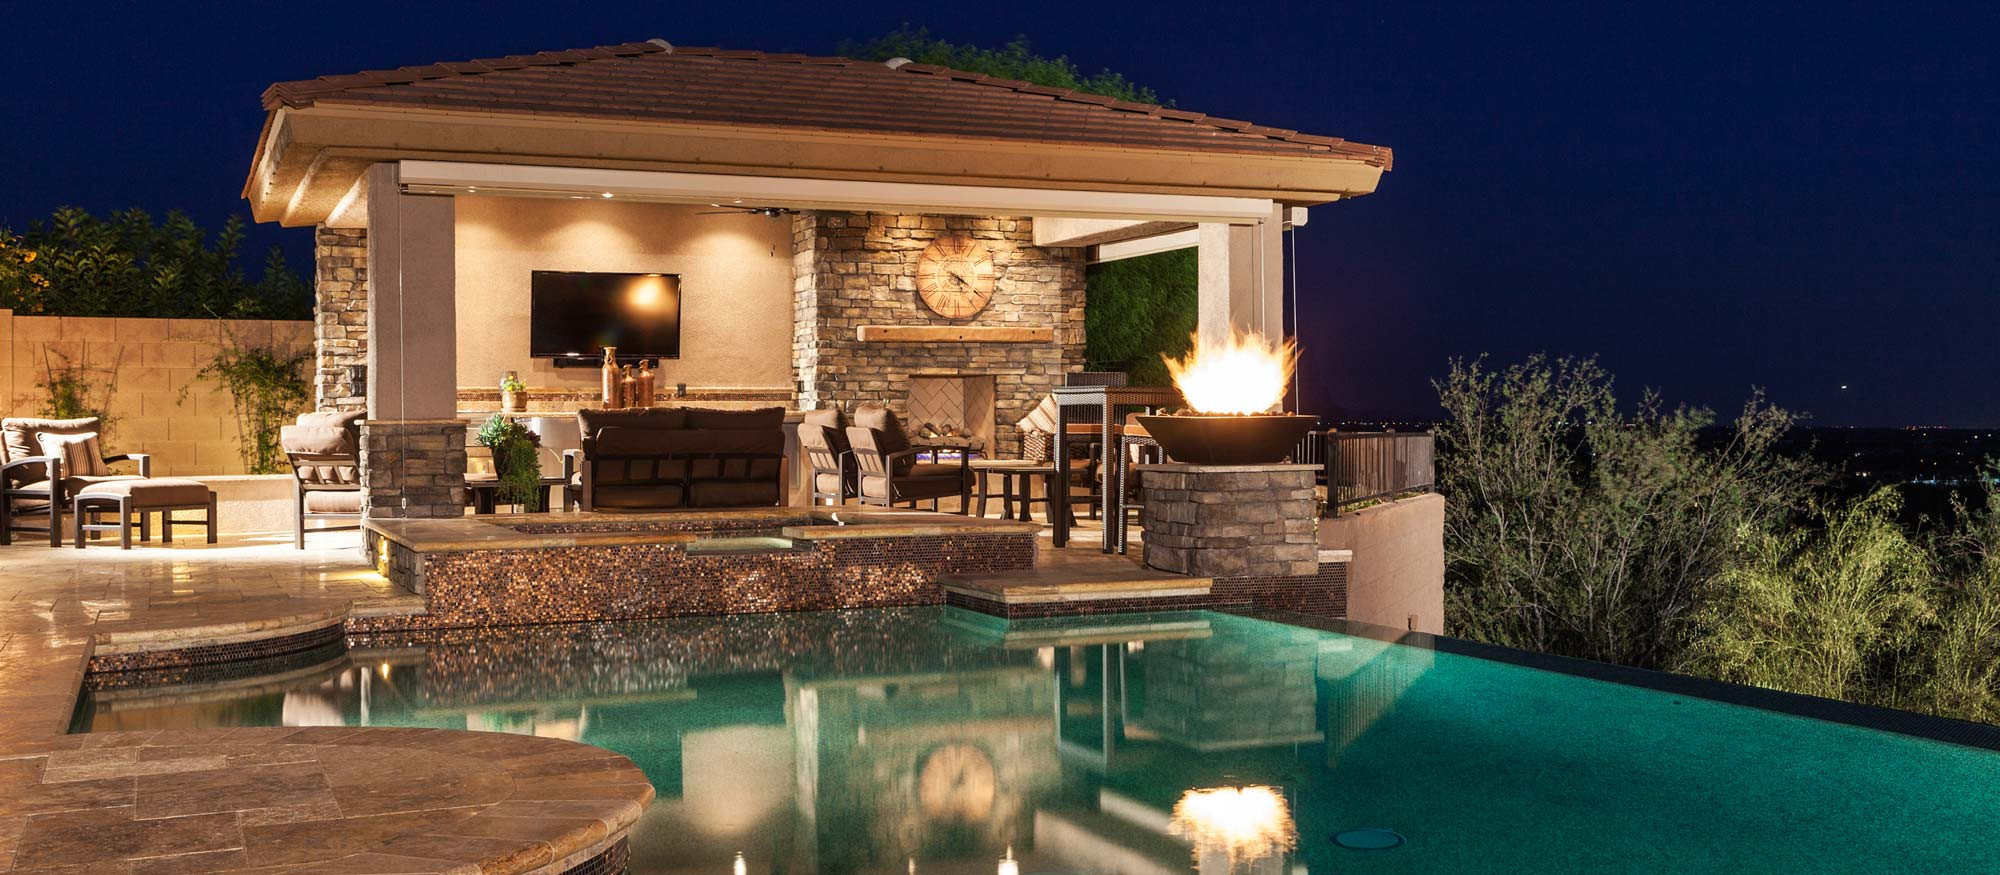 Backyard cool backyard pool designs for your outdoor for Custom swimming pool designs